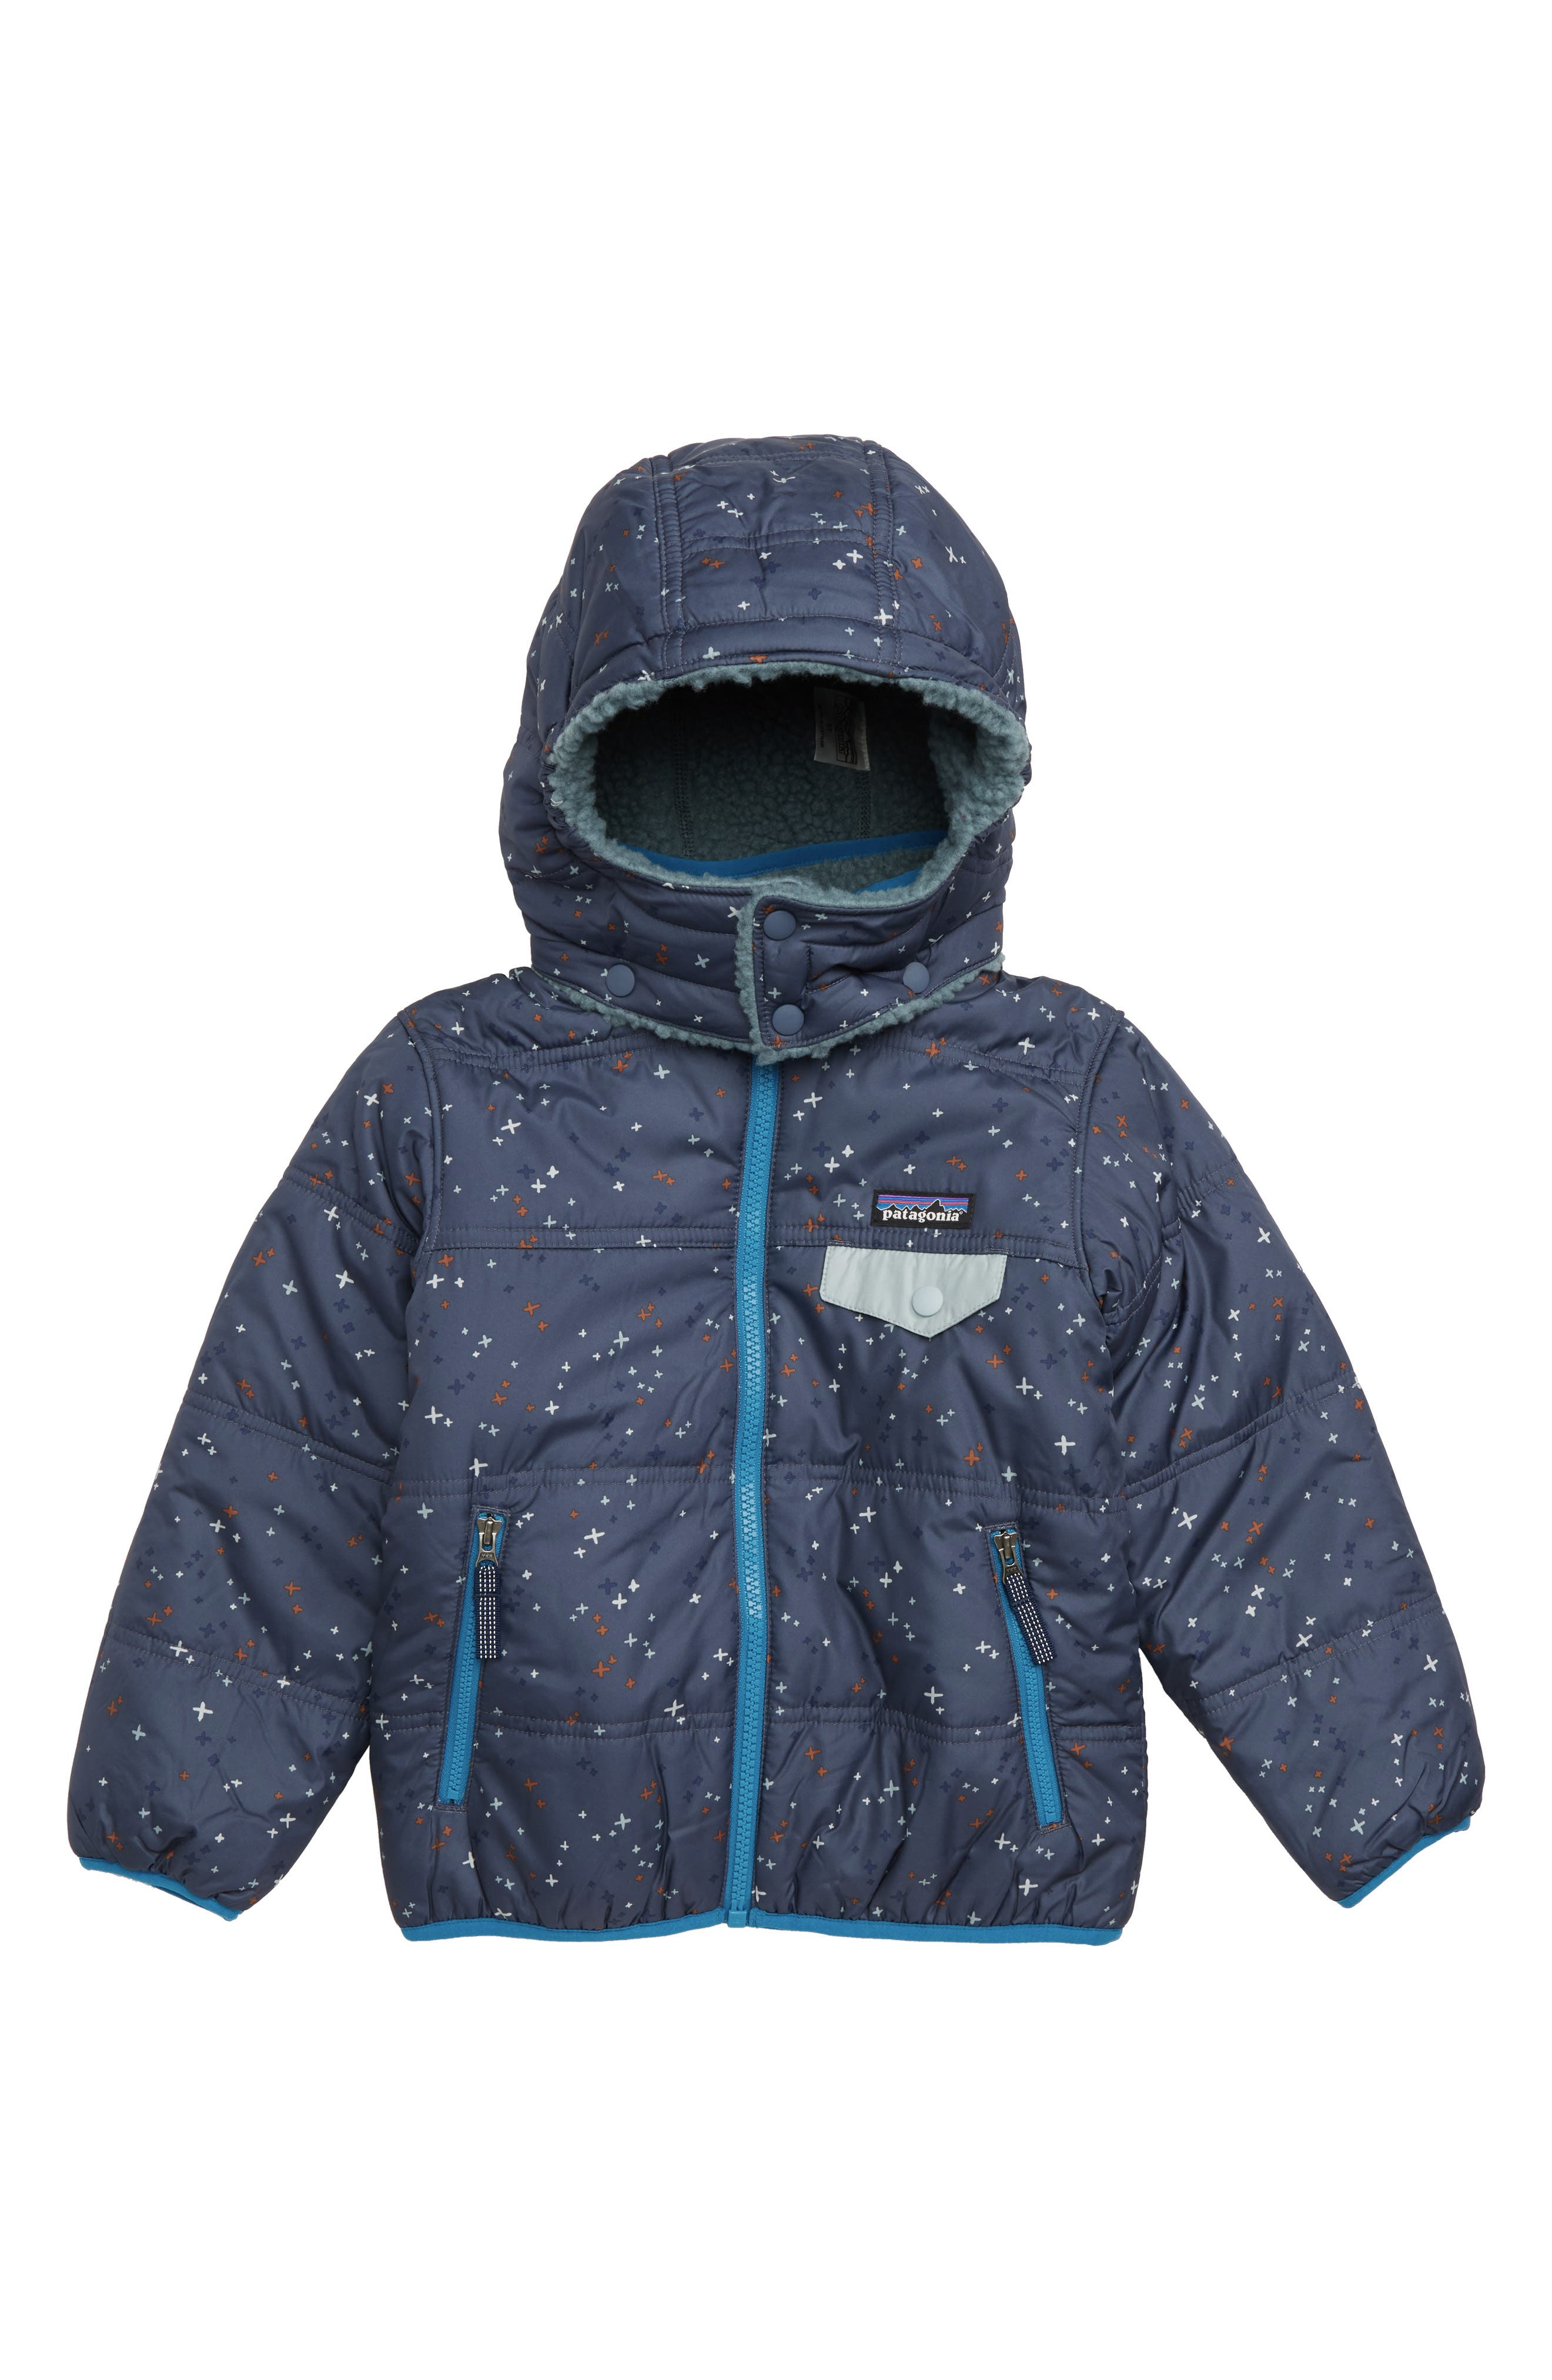 'Tribbles' Reversible Water Resistant Snow Jacket,                             Main thumbnail 1, color,                             CSCL CROSS STITCH NAVY